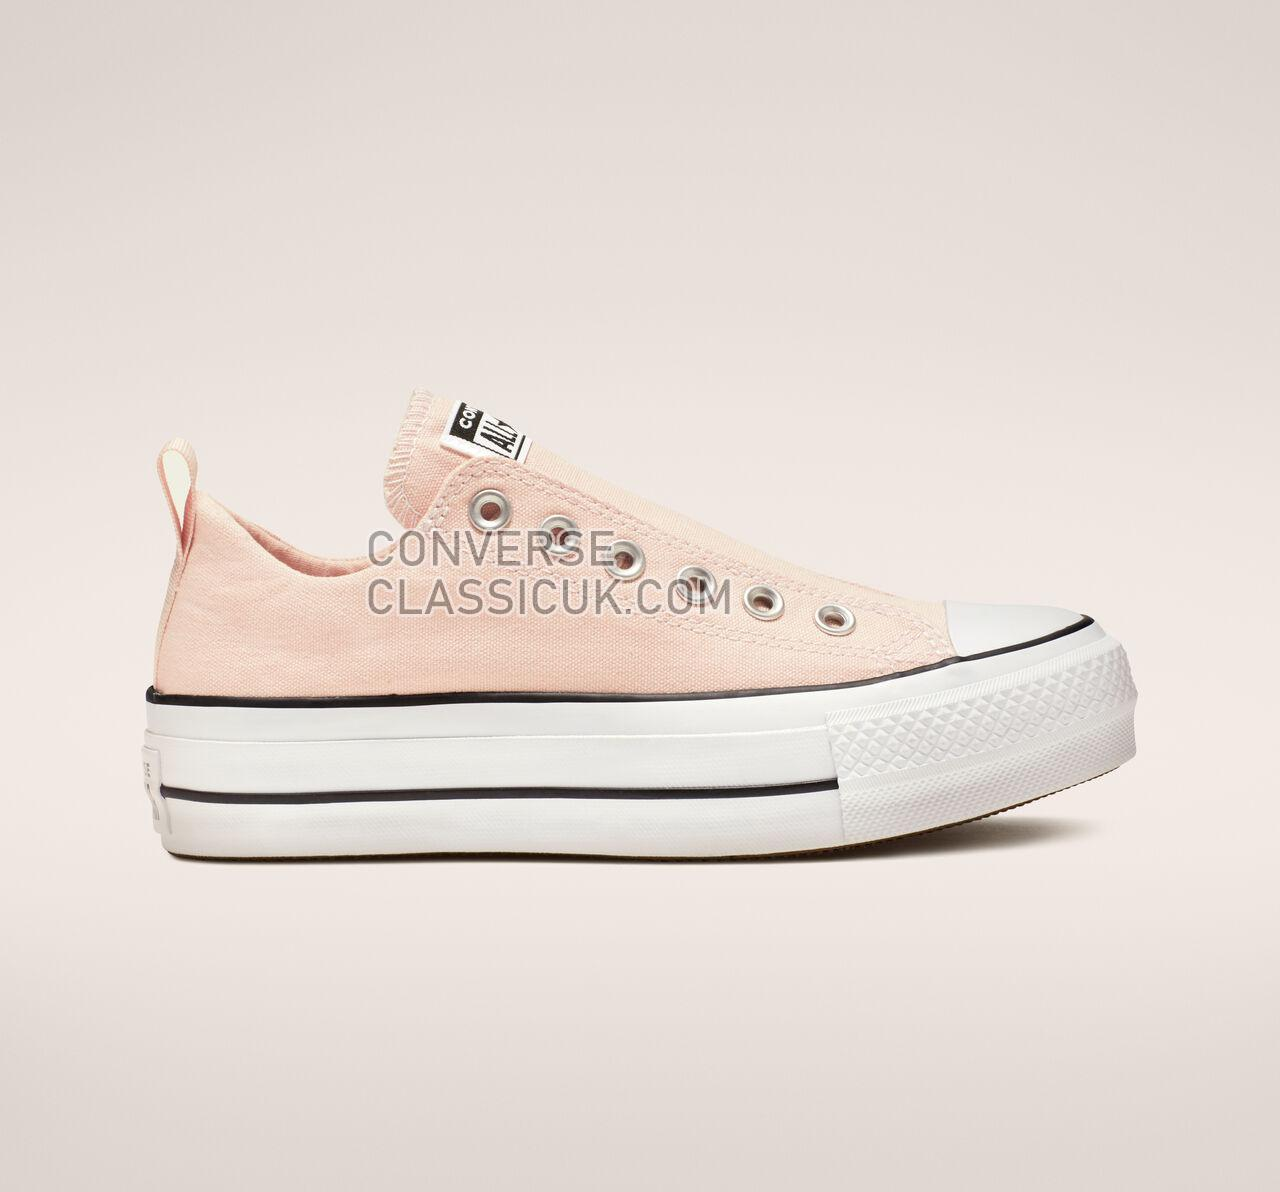 Converse Chuck Taylor All Star Cali Mood Lift Low Top Womens 564341F Washed Coral/White/Black Shoes